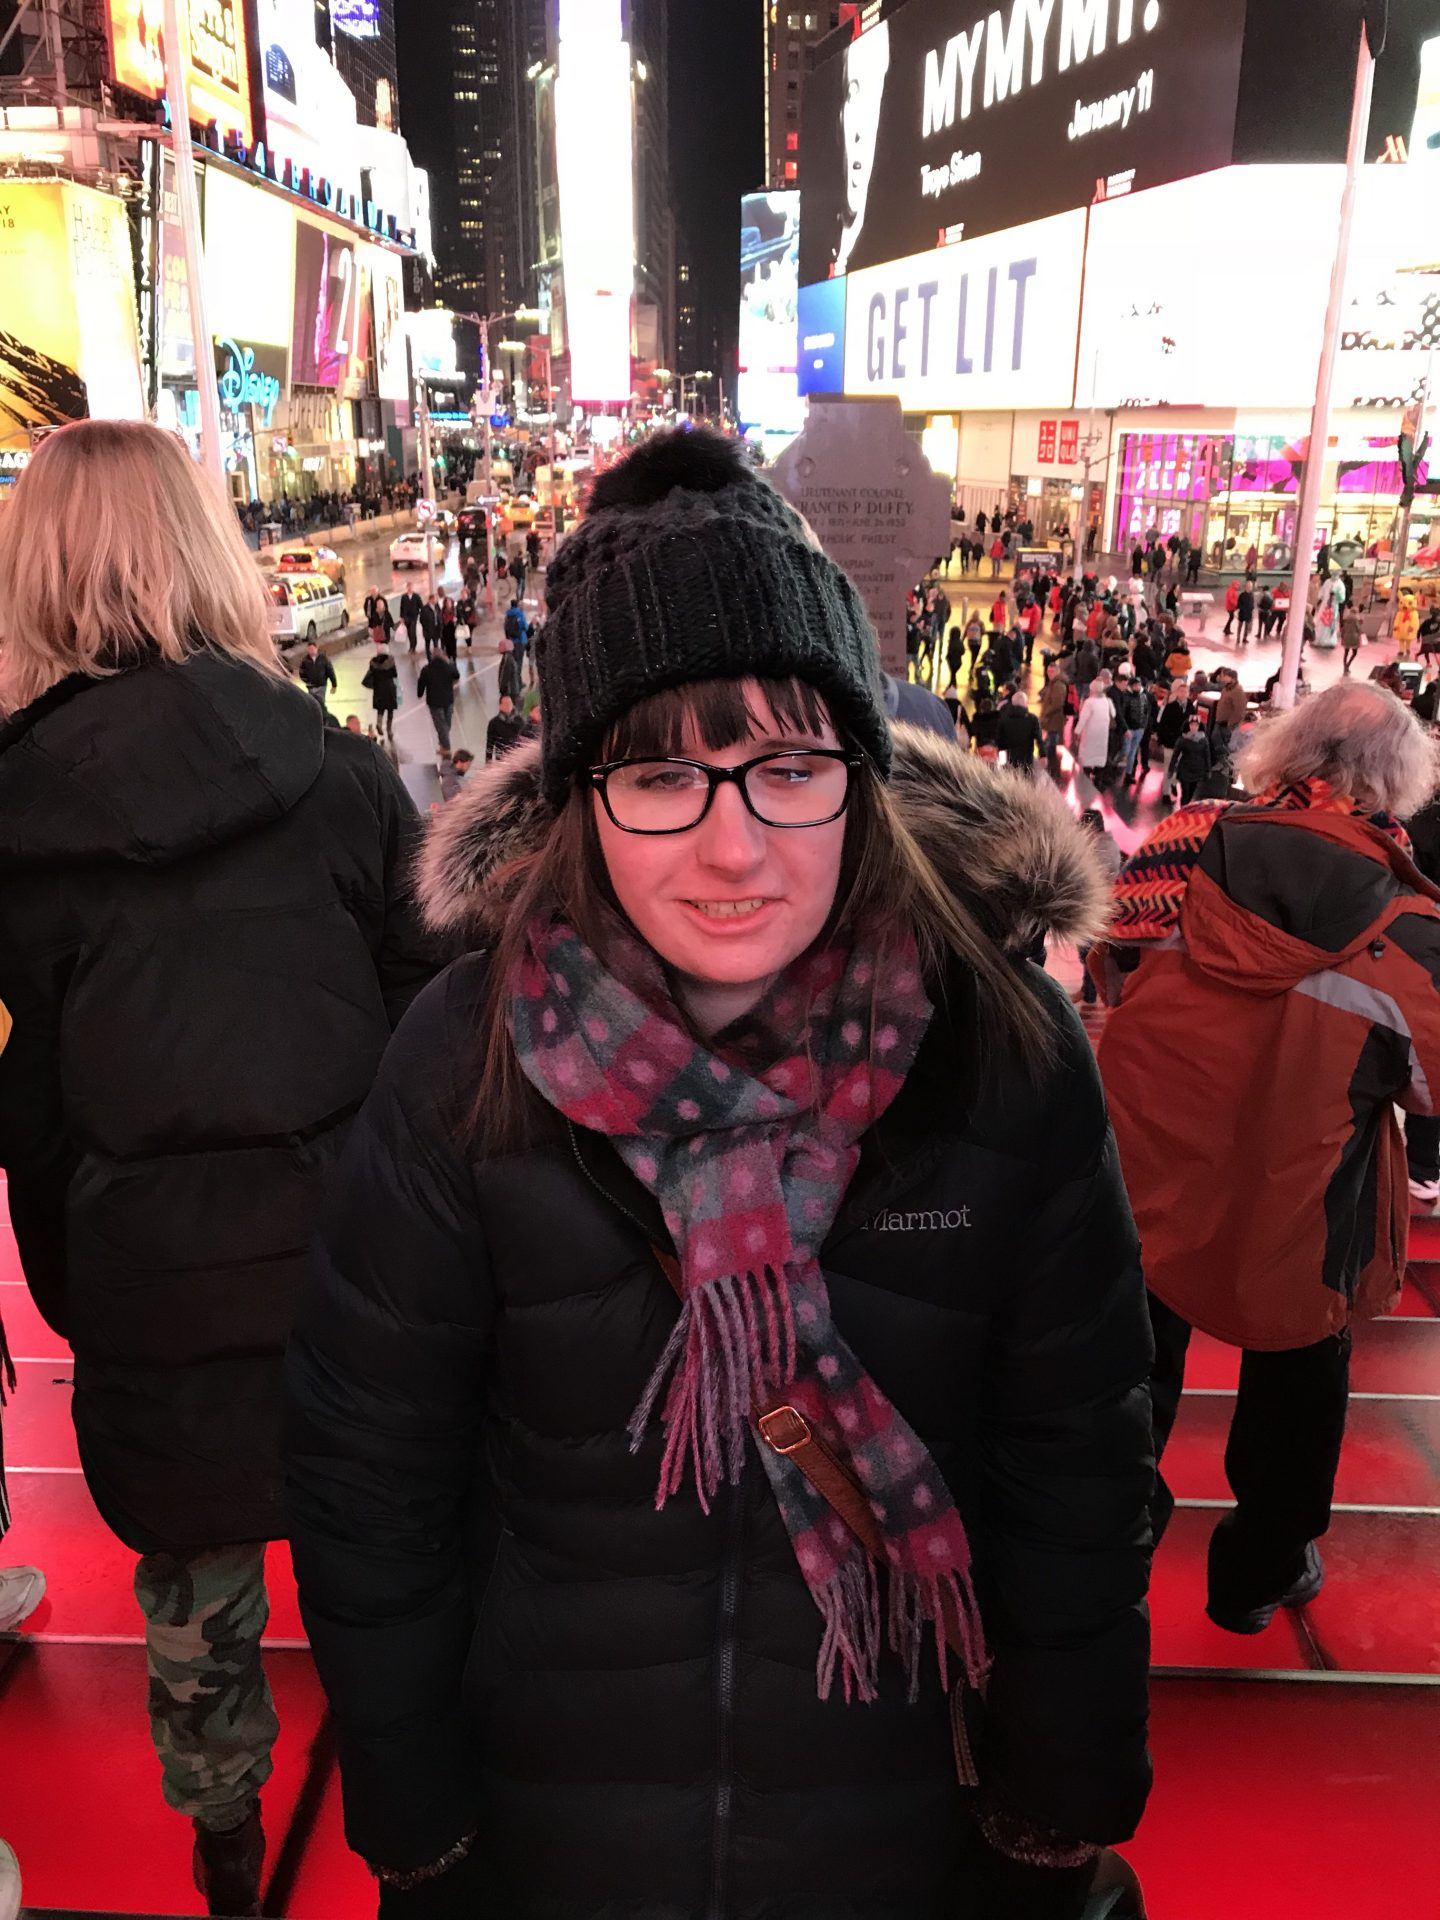 A photo of Holly at Times Square in the evening